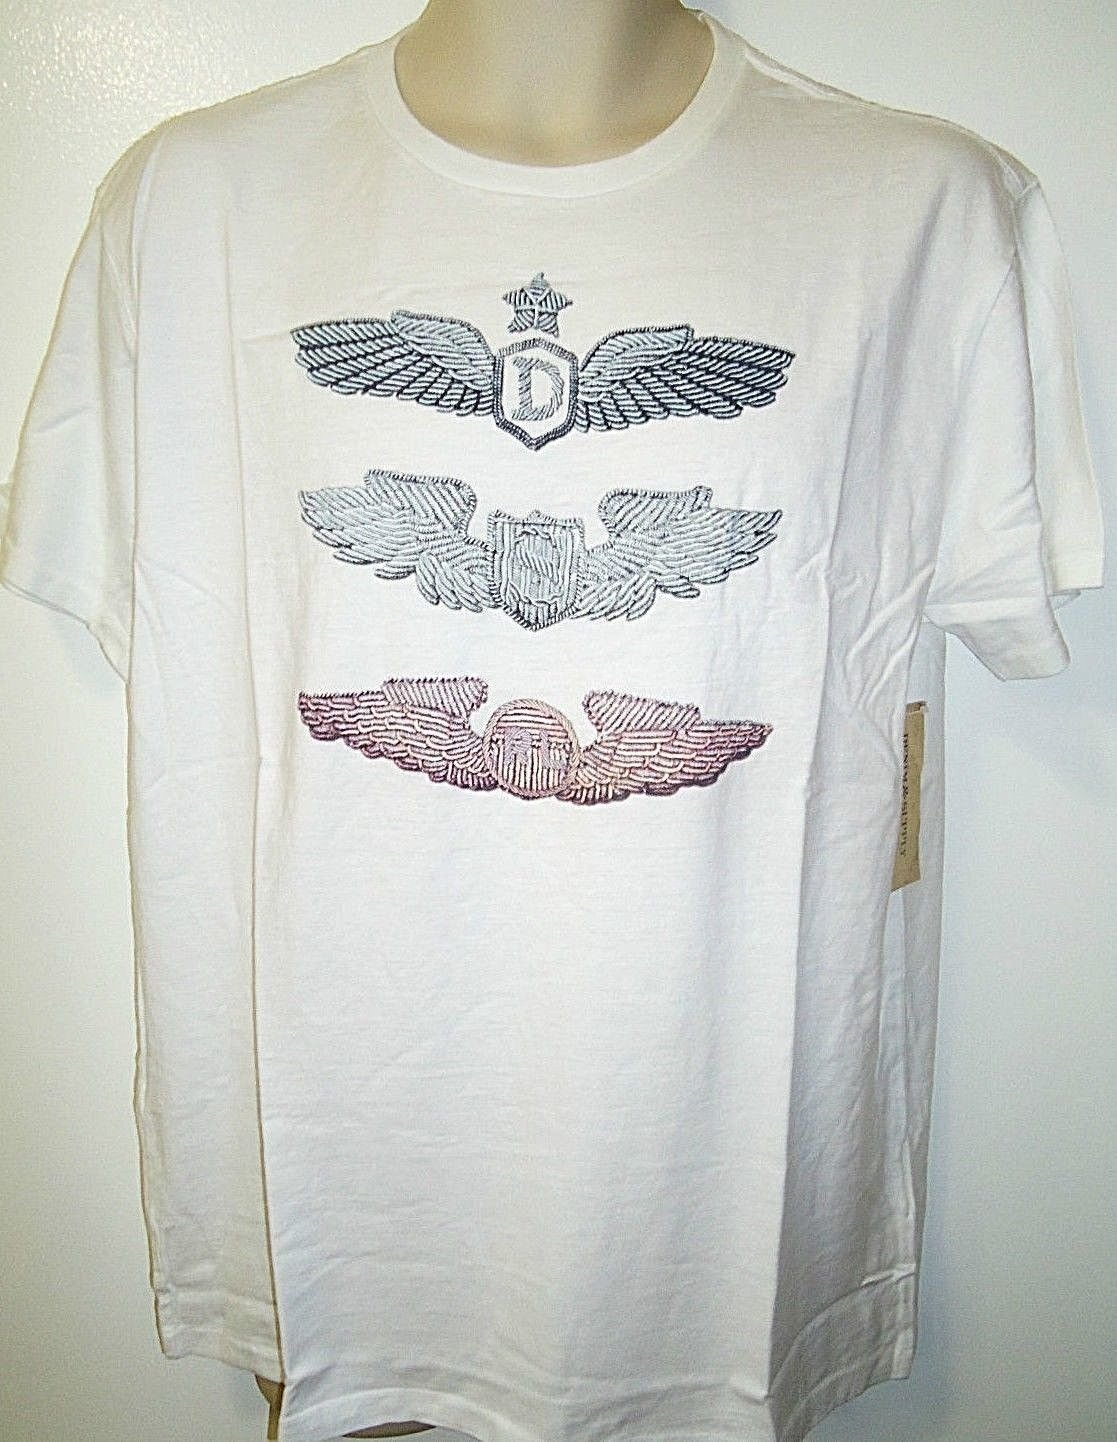 RALPH LAUREN - POLO - AIR FORCE - PILOT - WINGS - WHITE - T-SHIRT - NEW - LARGE